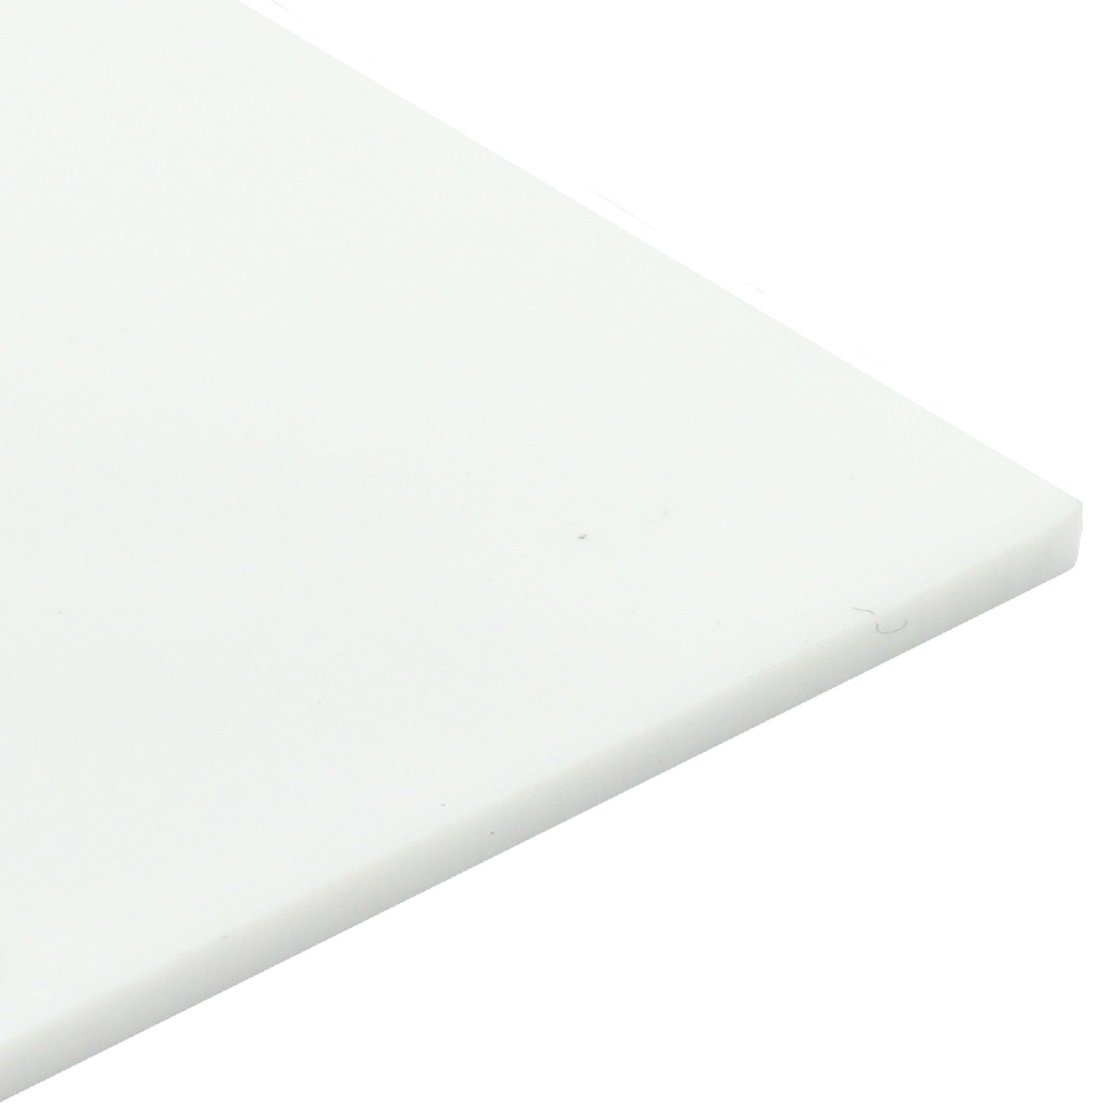 3mm Perspex White Gloss Acrylic Plastic Sheet 16 SIZES TO CHOOSE (500mm x 500mm) Sign Materials Direct